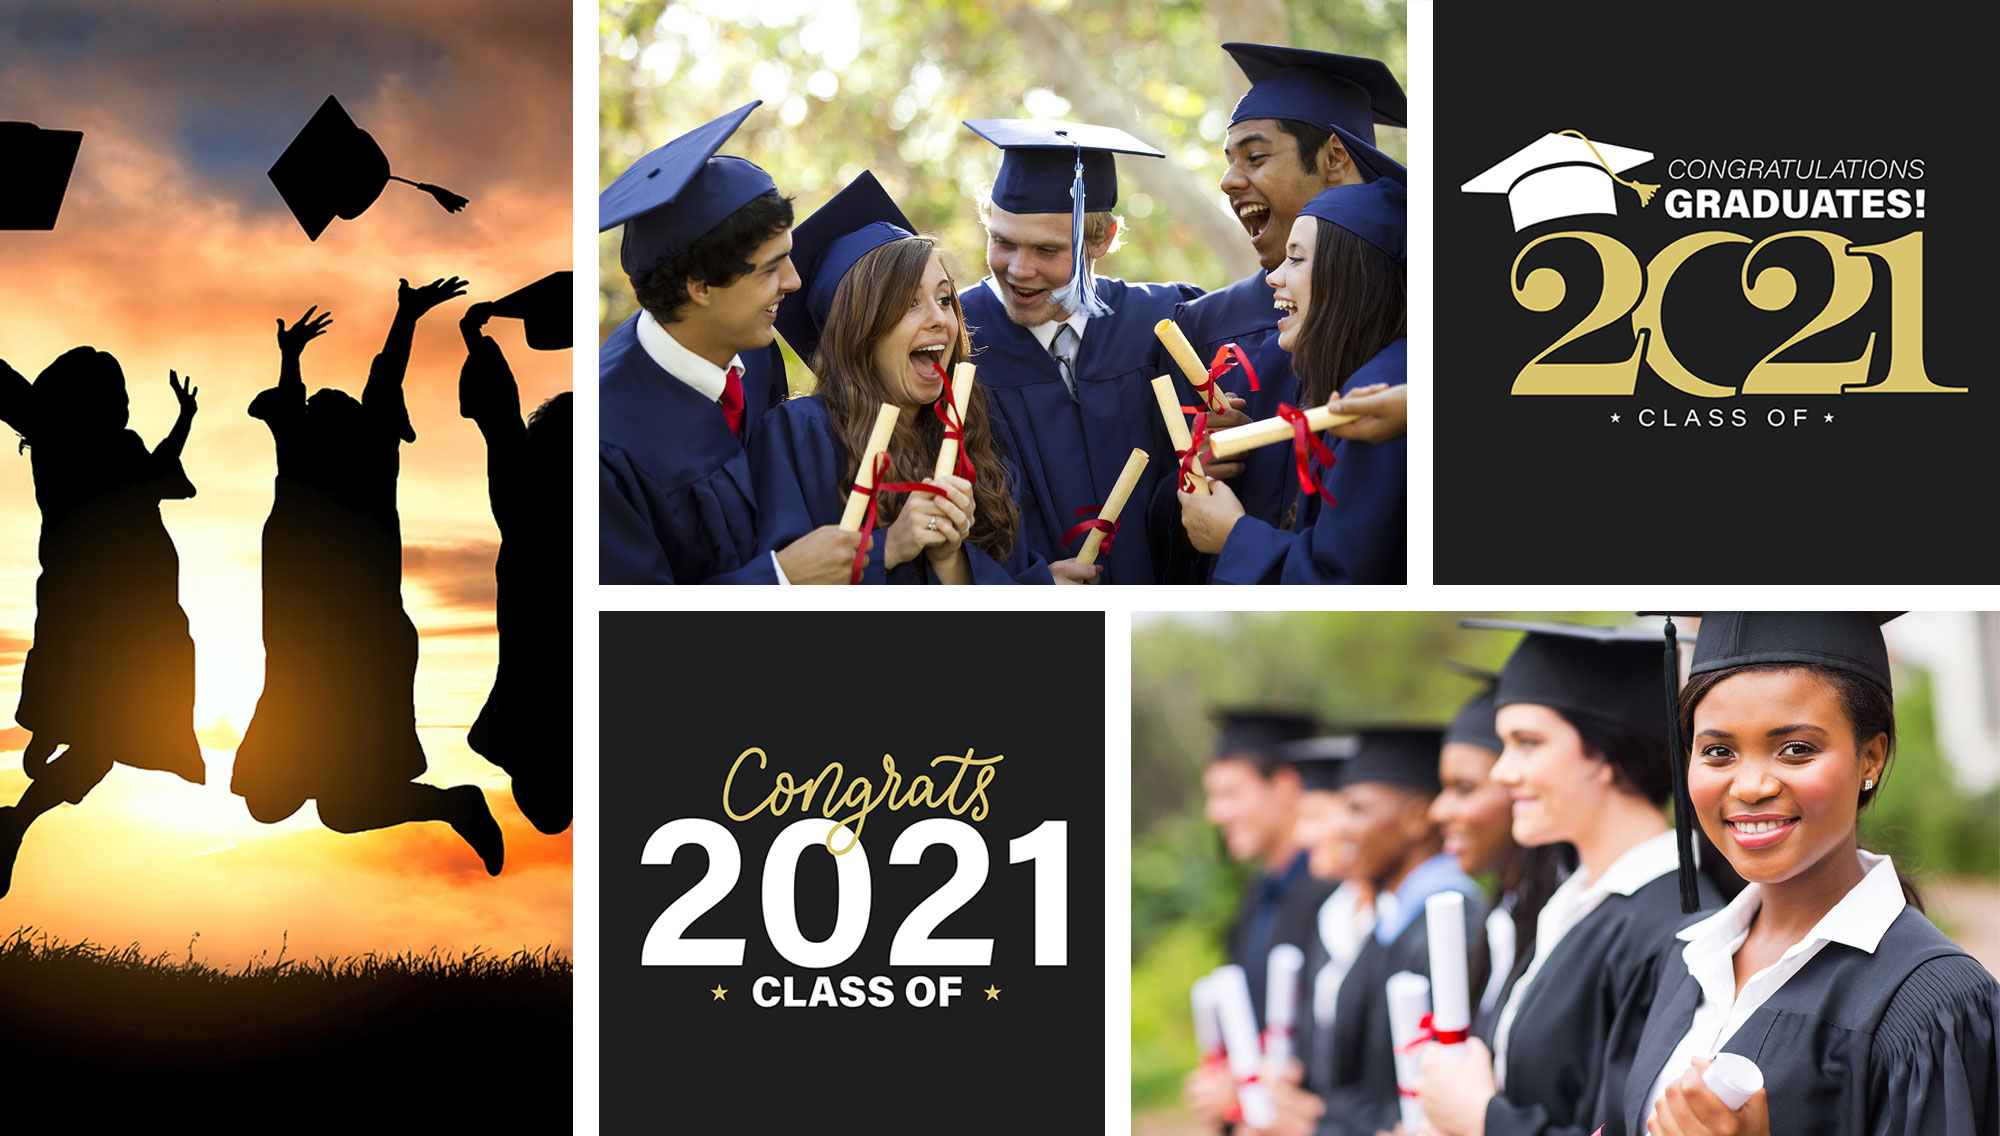 collage of graduation scenes and logos